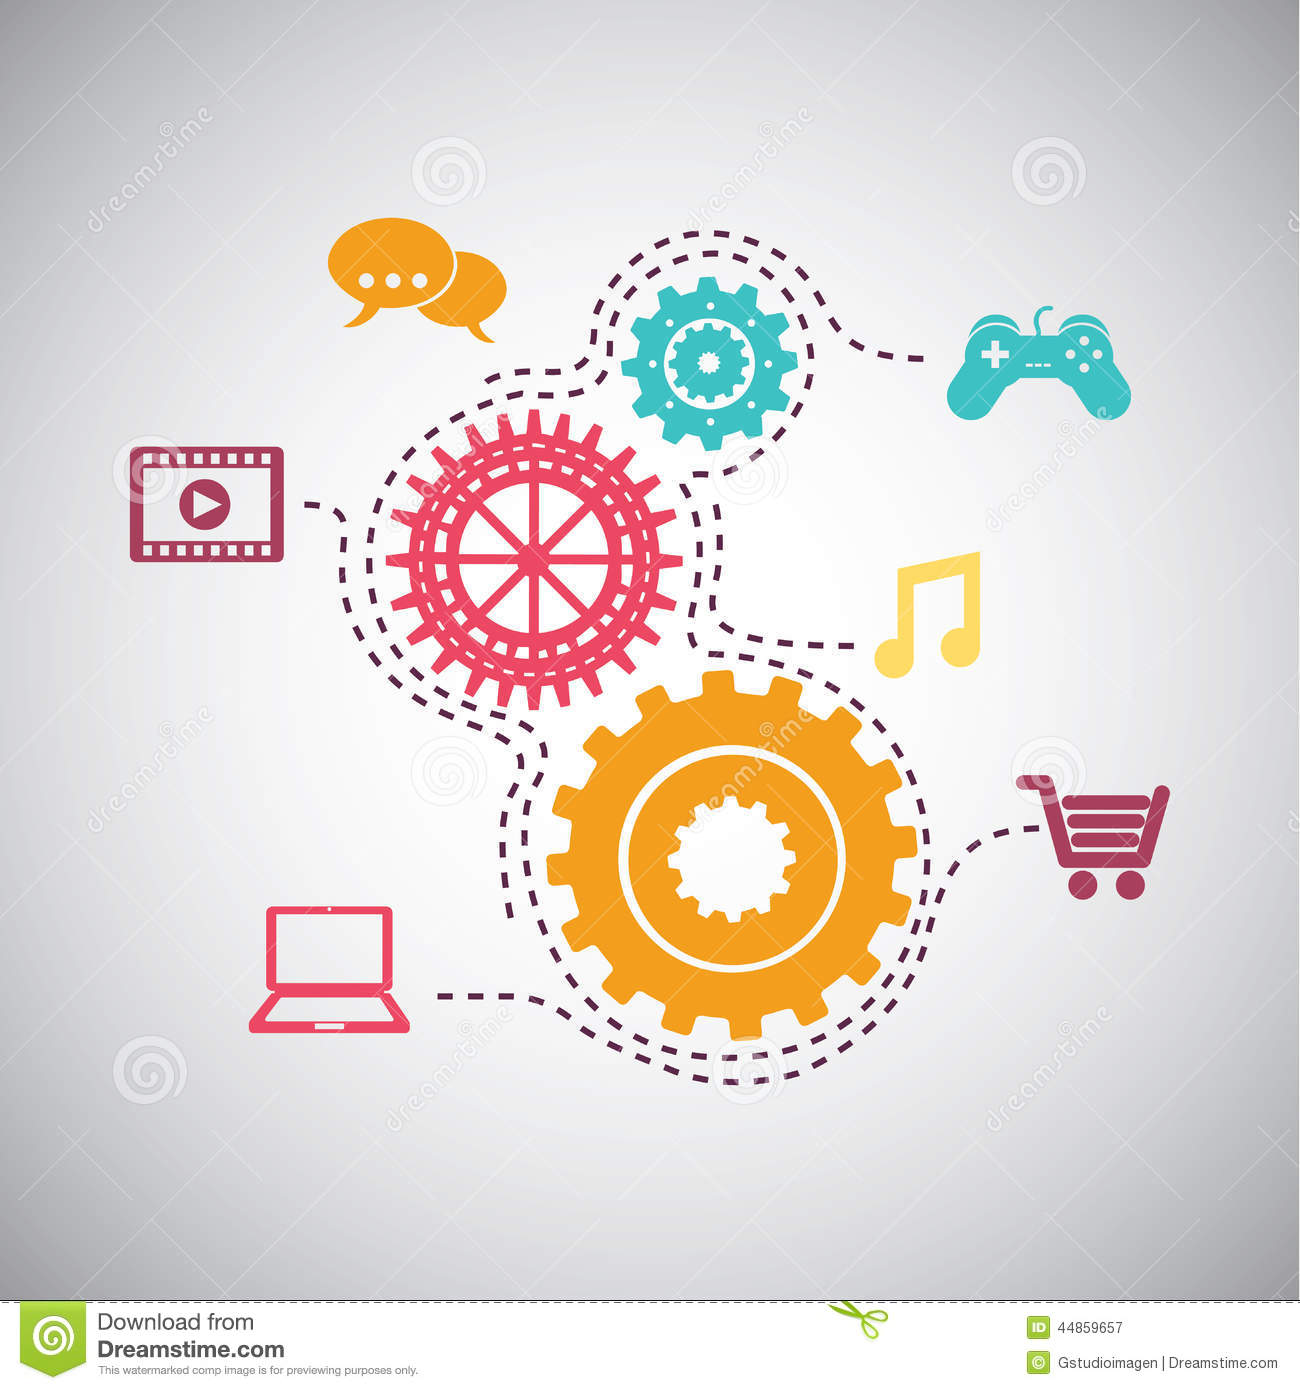 Media Design Stock Vector - Image: 44859657